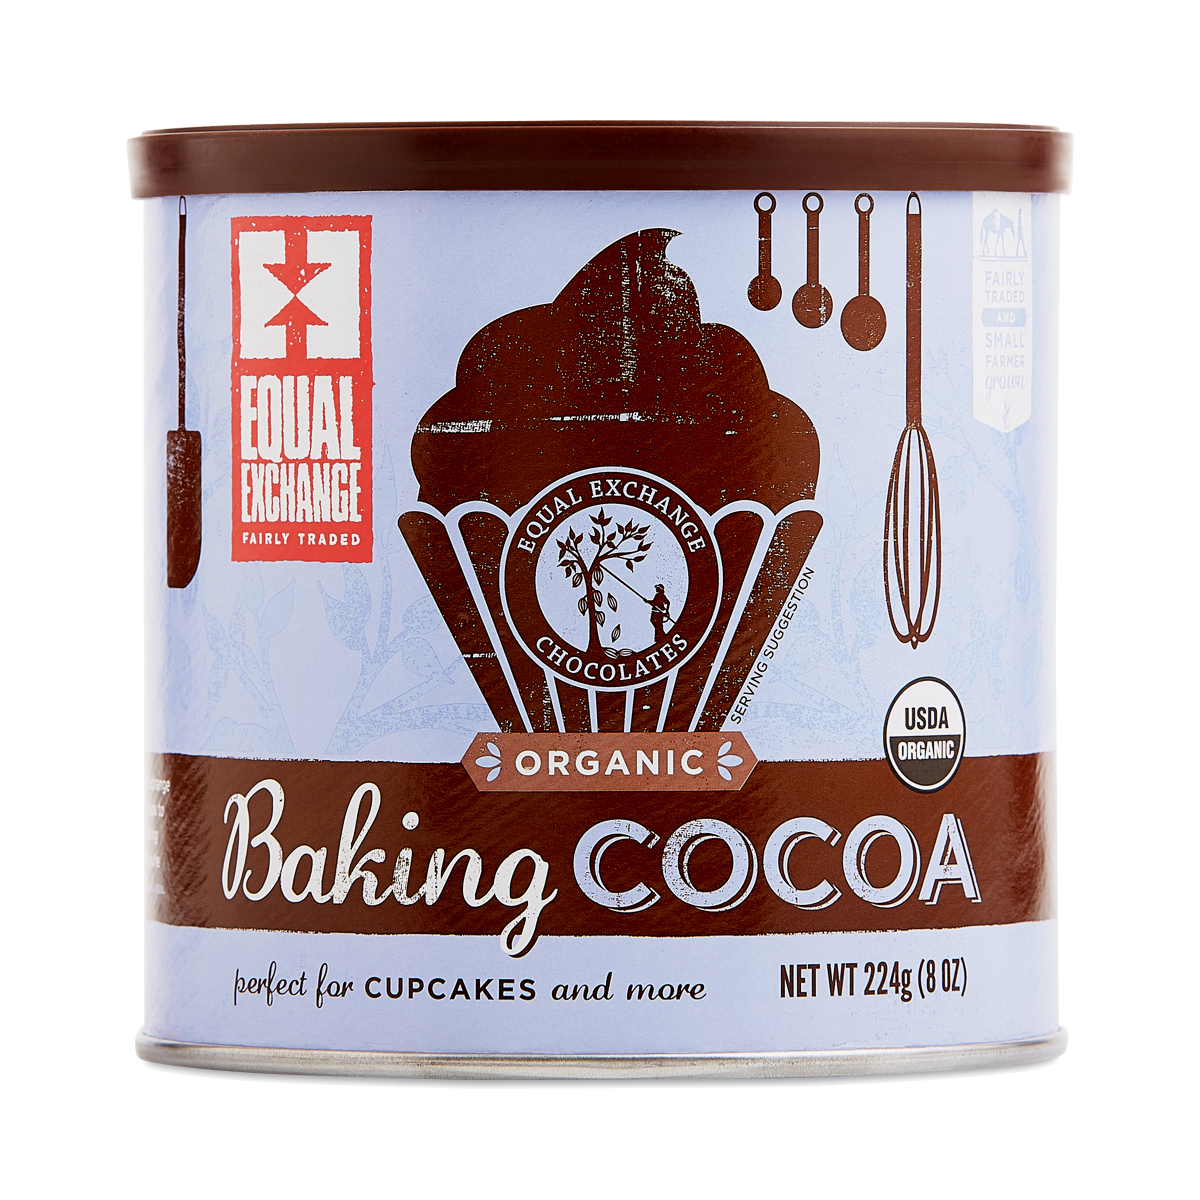 Equal Exchange Organic Baking Cocoa 8 oz tin